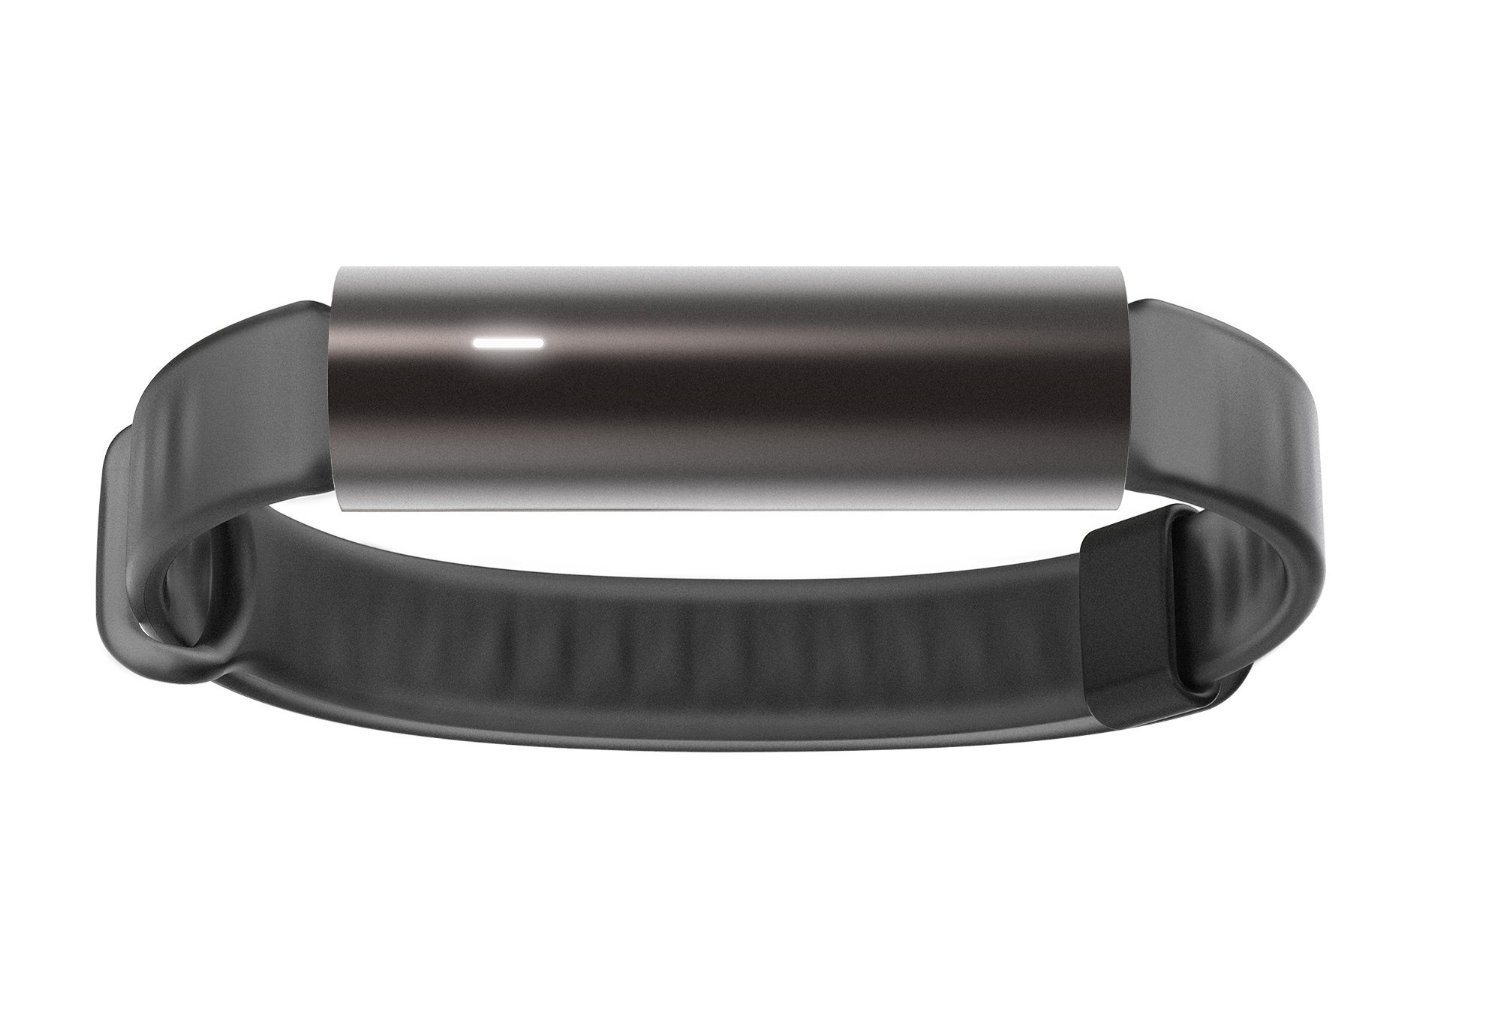 Misfit-Ray-fitness-band